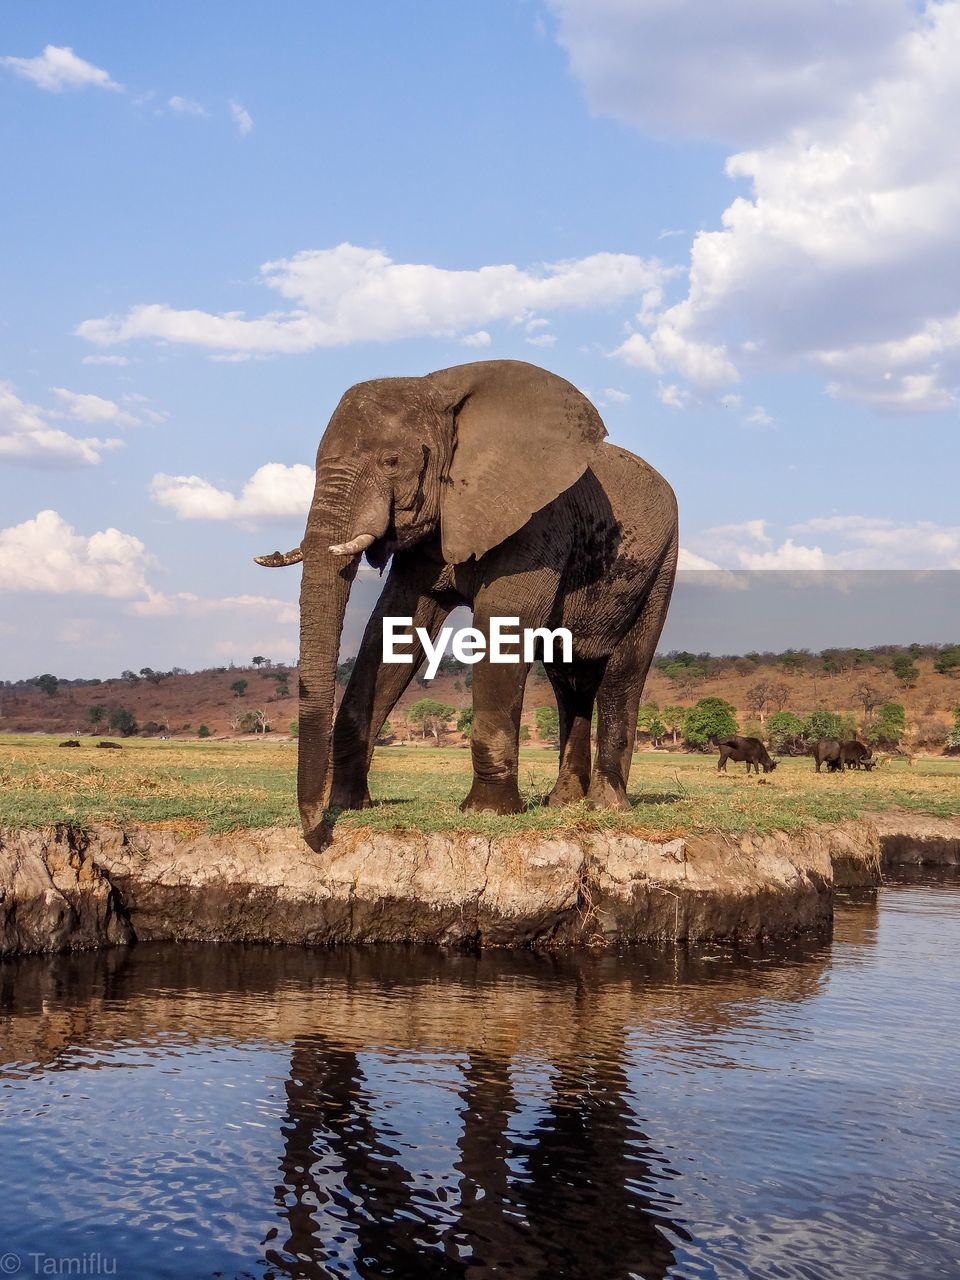 water, elephant, sky, nature, animal, cloud - sky, day, animal themes, mammal, no people, animal wildlife, landscape, plant, lake, animals in the wild, environment, grass, land, outdoors, african elephant, animal trunk, herbivorous, drinking